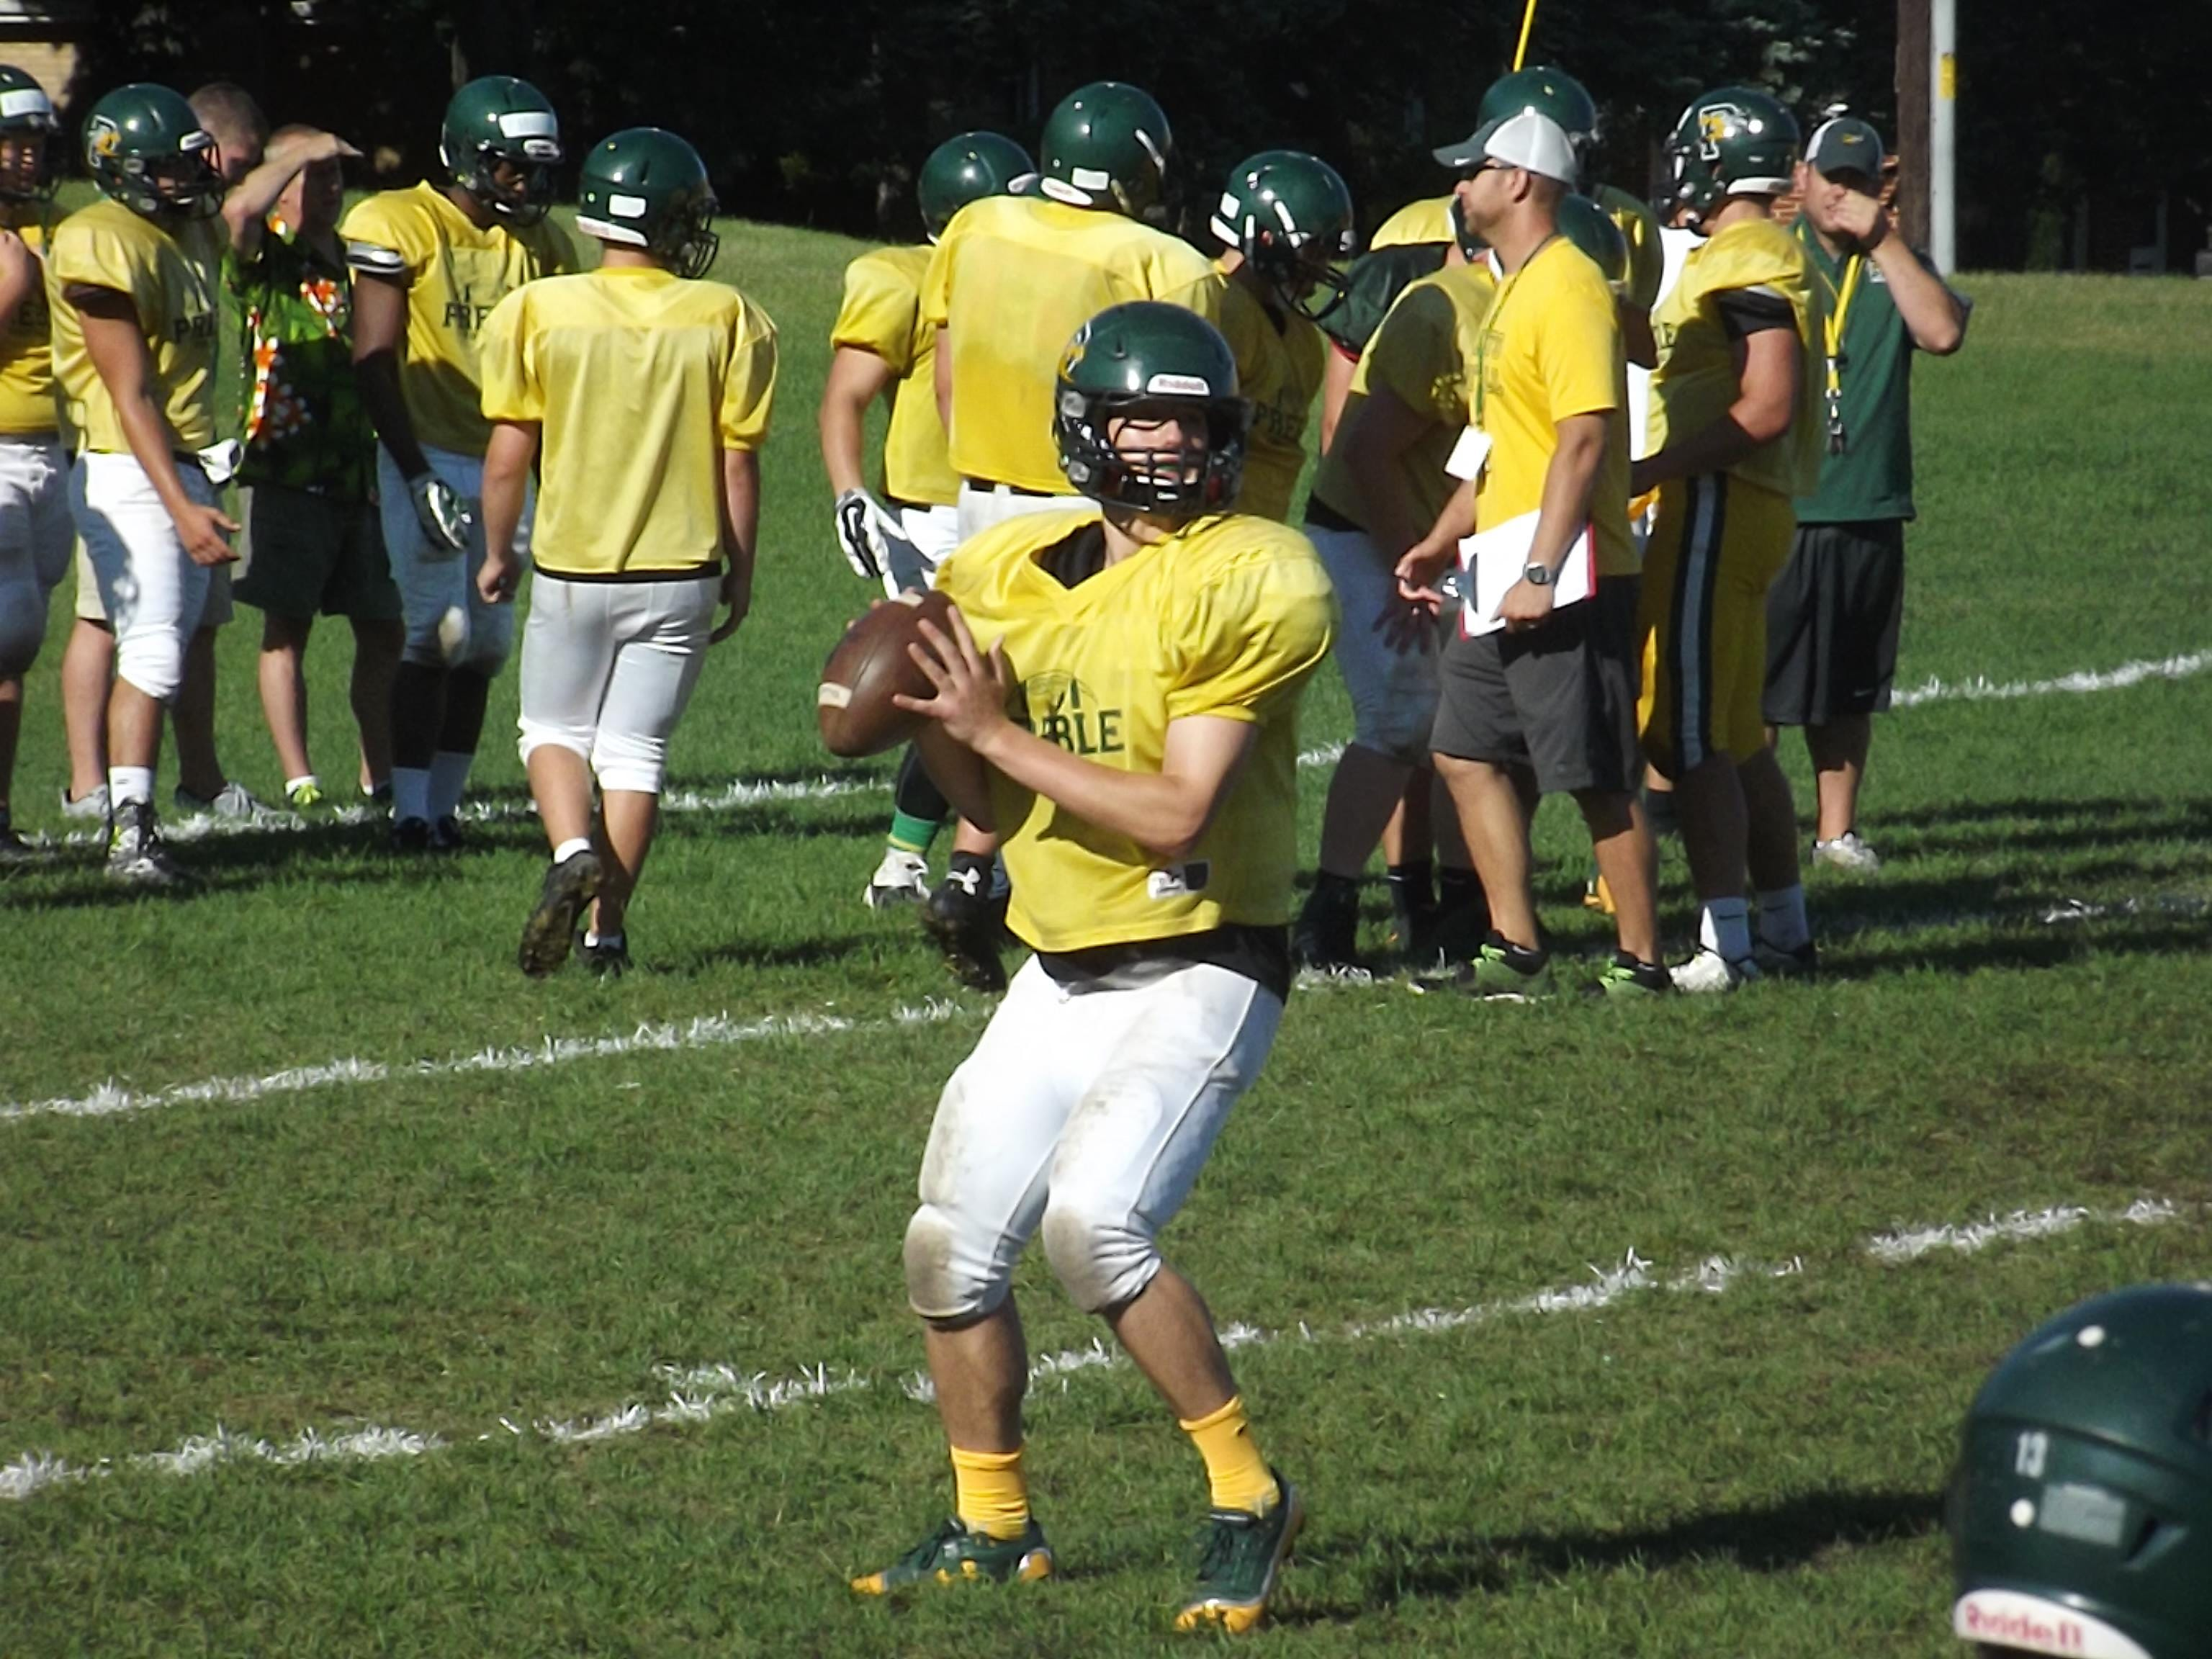 Green Bay Preble senior quarterback Dylan Van Boxel threw for 859 yards and 11 touchdowns with three interceptions last season. He's competing with junior Coy Wanner for the starting position.